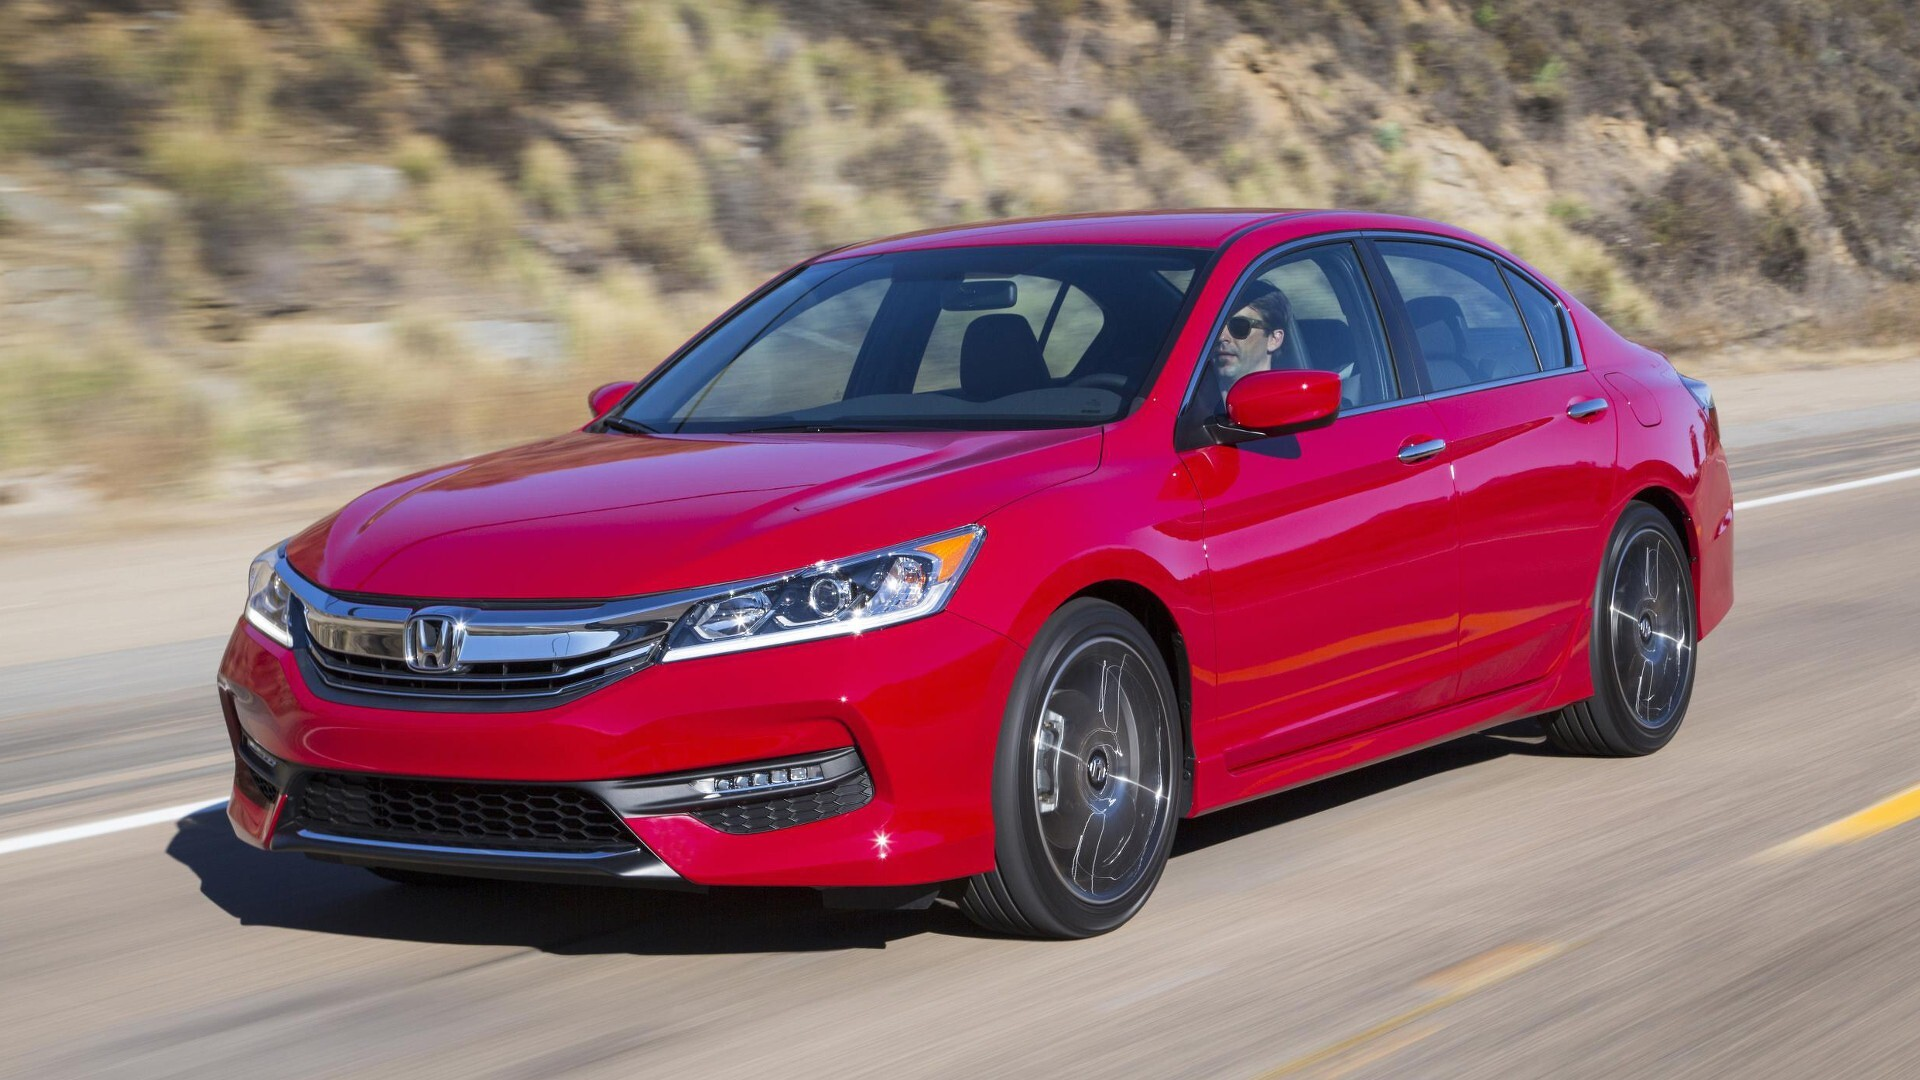 New Honda 2017 Accord Car Hd Photo Hd Wallpapers